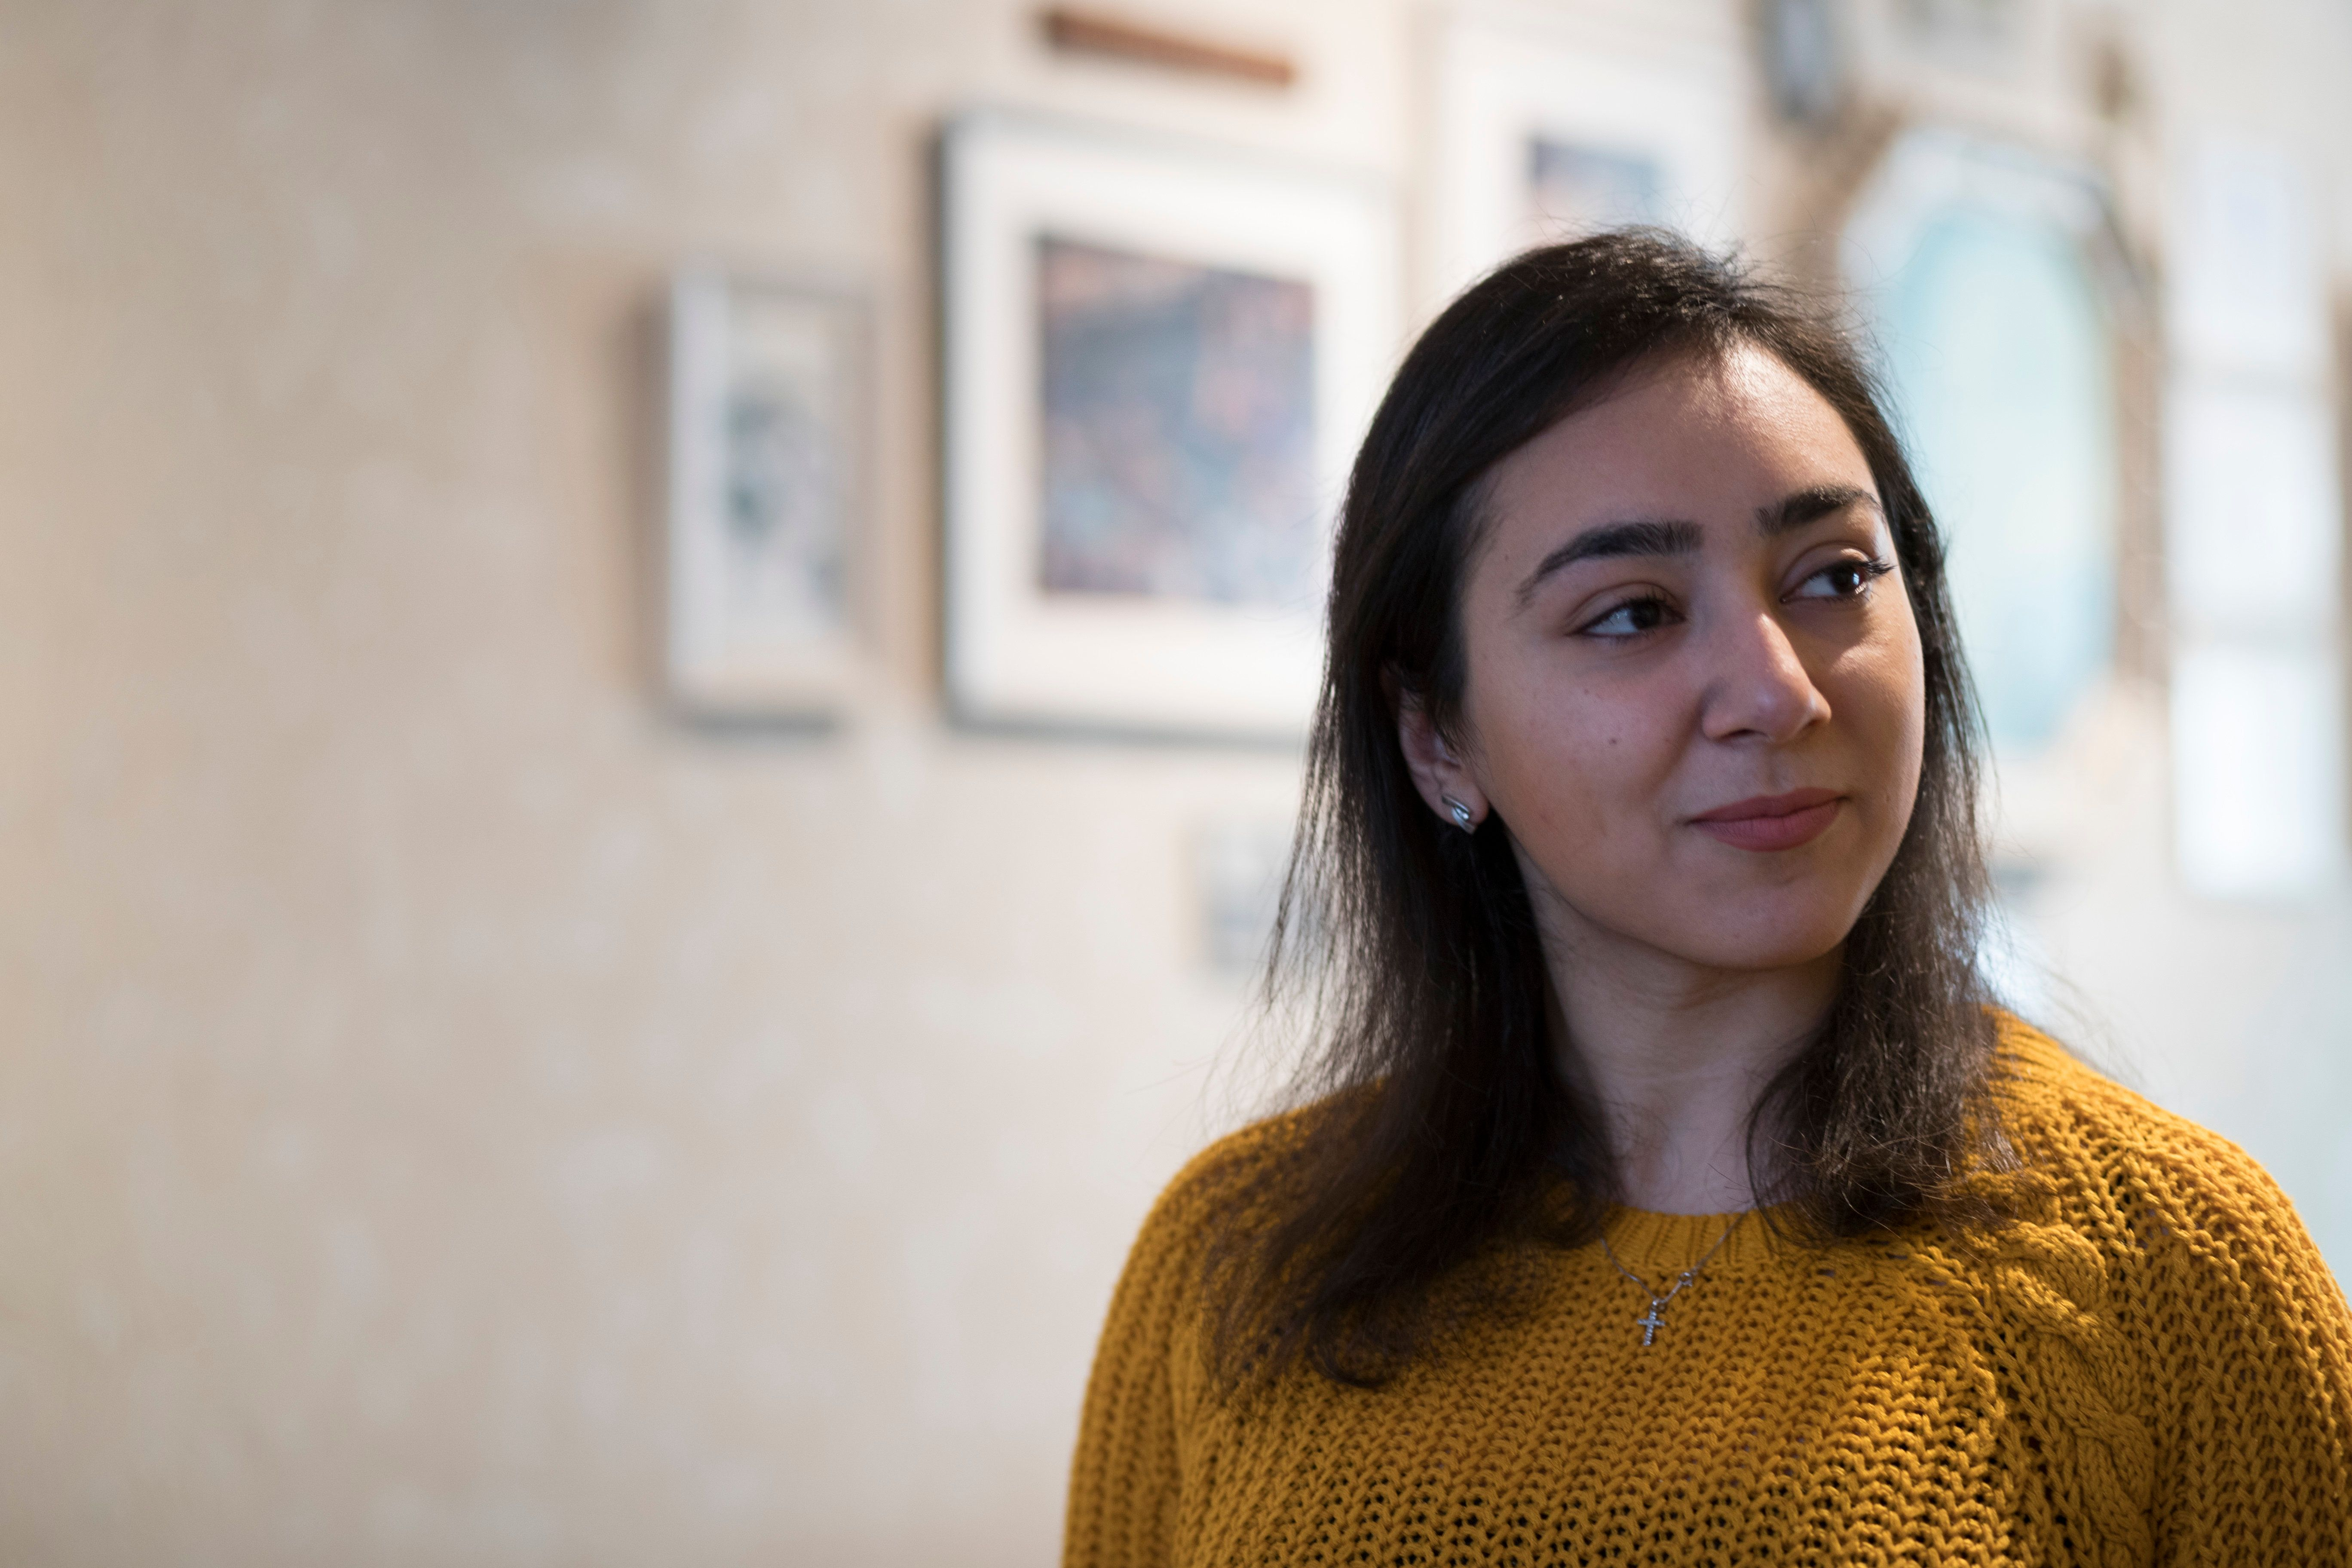 Hayarpi Tamrazyan, a 21-year-old Armenian asylum seeker, reads a poem she wrote during a press conference inside the Bethel chapel in The Hague, Netherlands, Thursday, Dec. 13, 2018. For more than 6 weeks, a rotating roster of preachers and visitors has been leading a non-stop, round-the-clock service at a small Protestant chapel in a quiet residential street in The Hague in an attempt to prevent the deportation of the Tamrazyan family. (AP Photo/Peter Dejong)